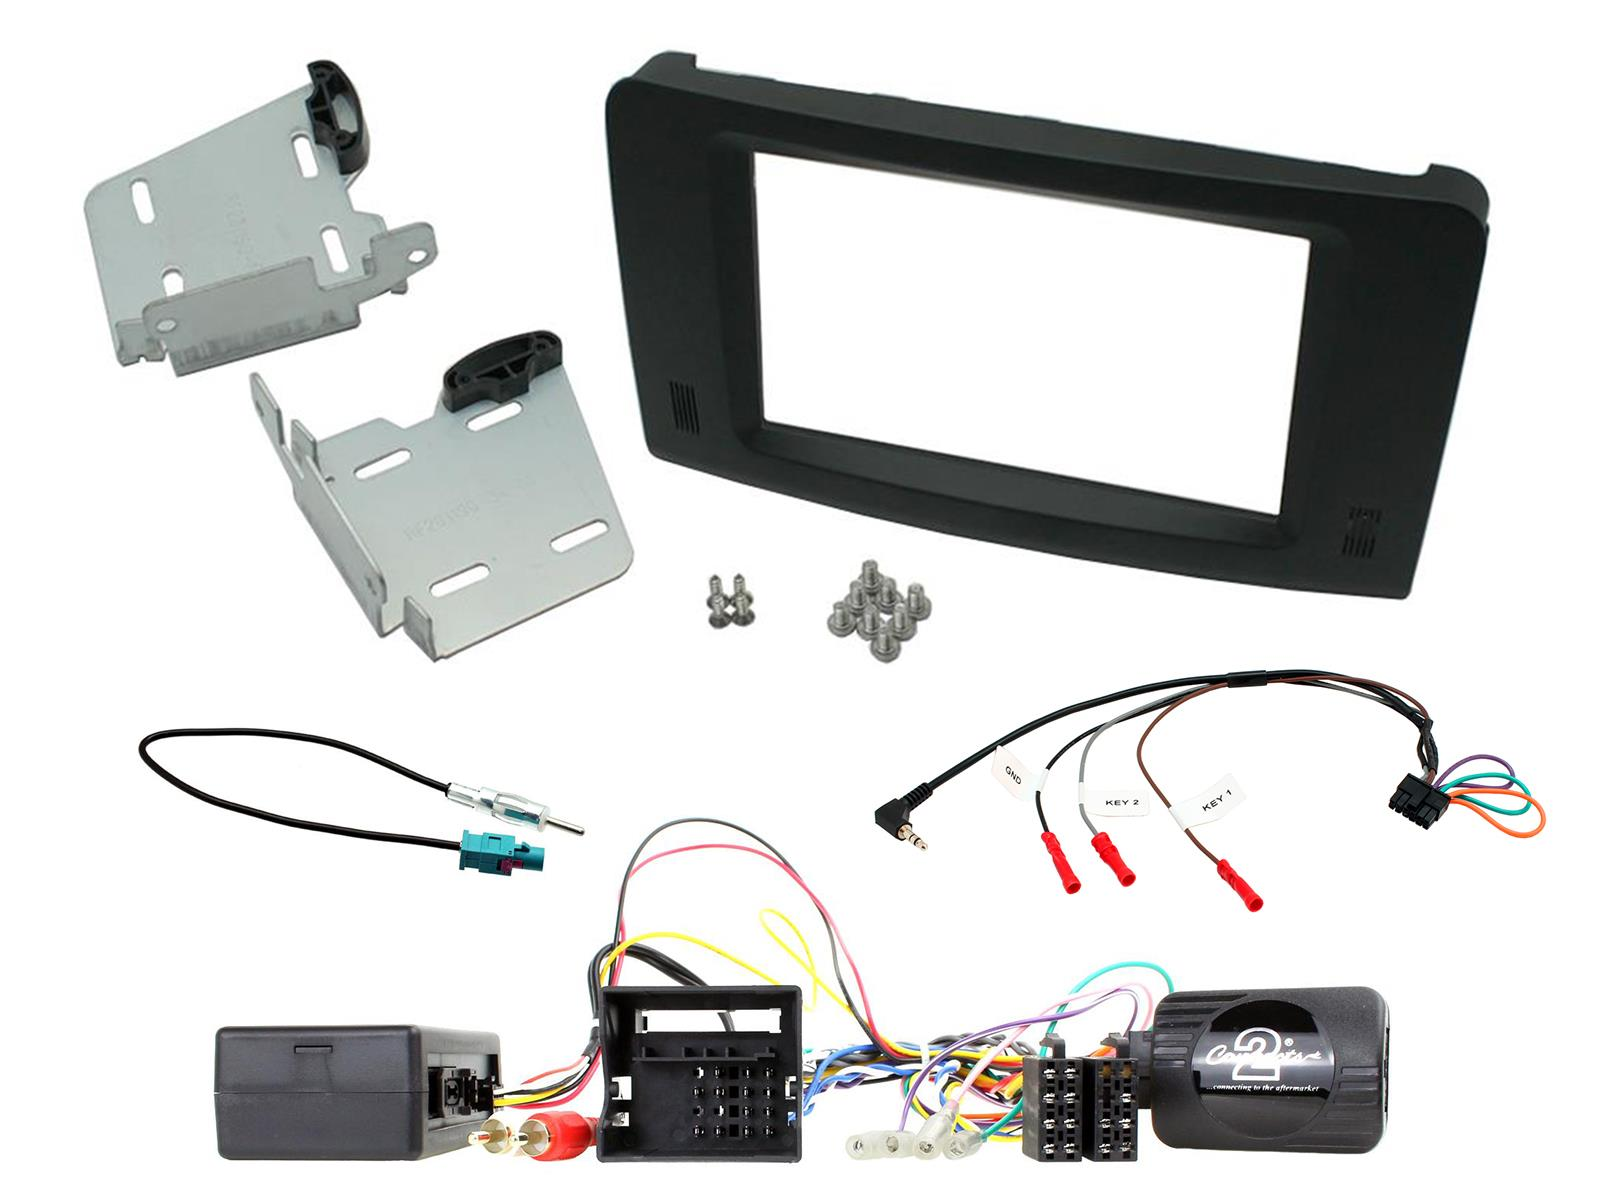 2DIN KIT Mercedes ML (W164) 2005-2011 + Fibre optic amp